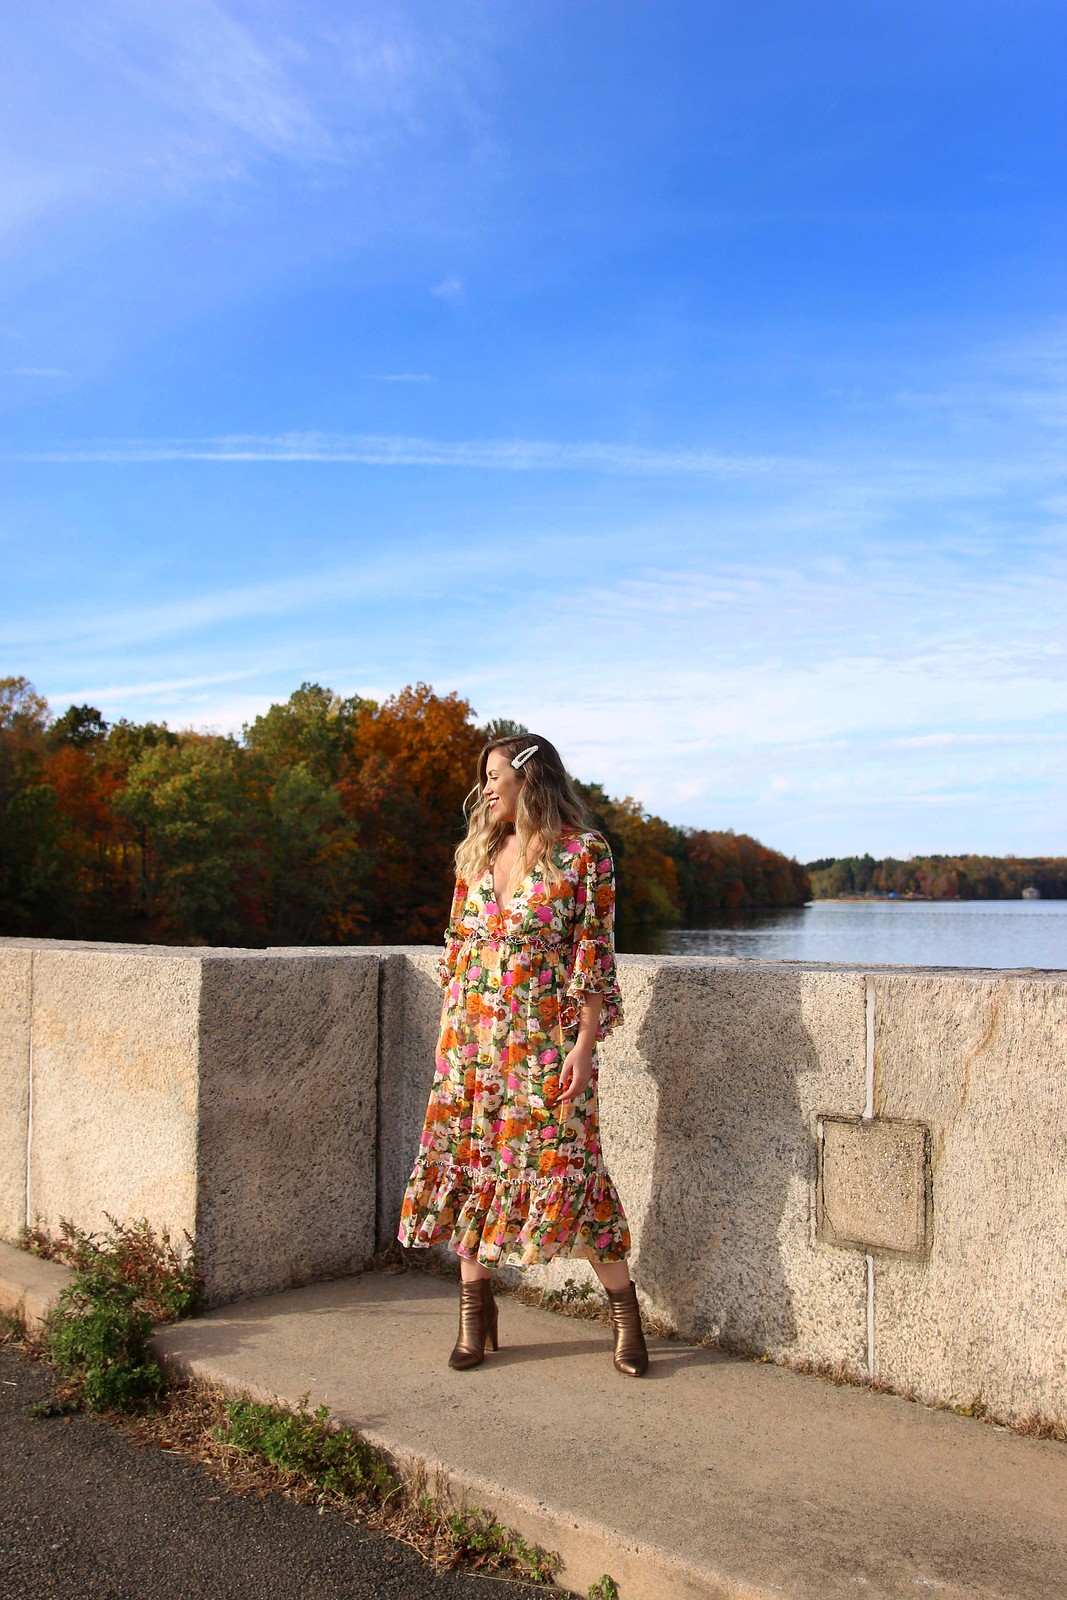 Kensico Dam Reservoir Valhalla Fall Foliage Most Instagrammable Places in Westchester County New York